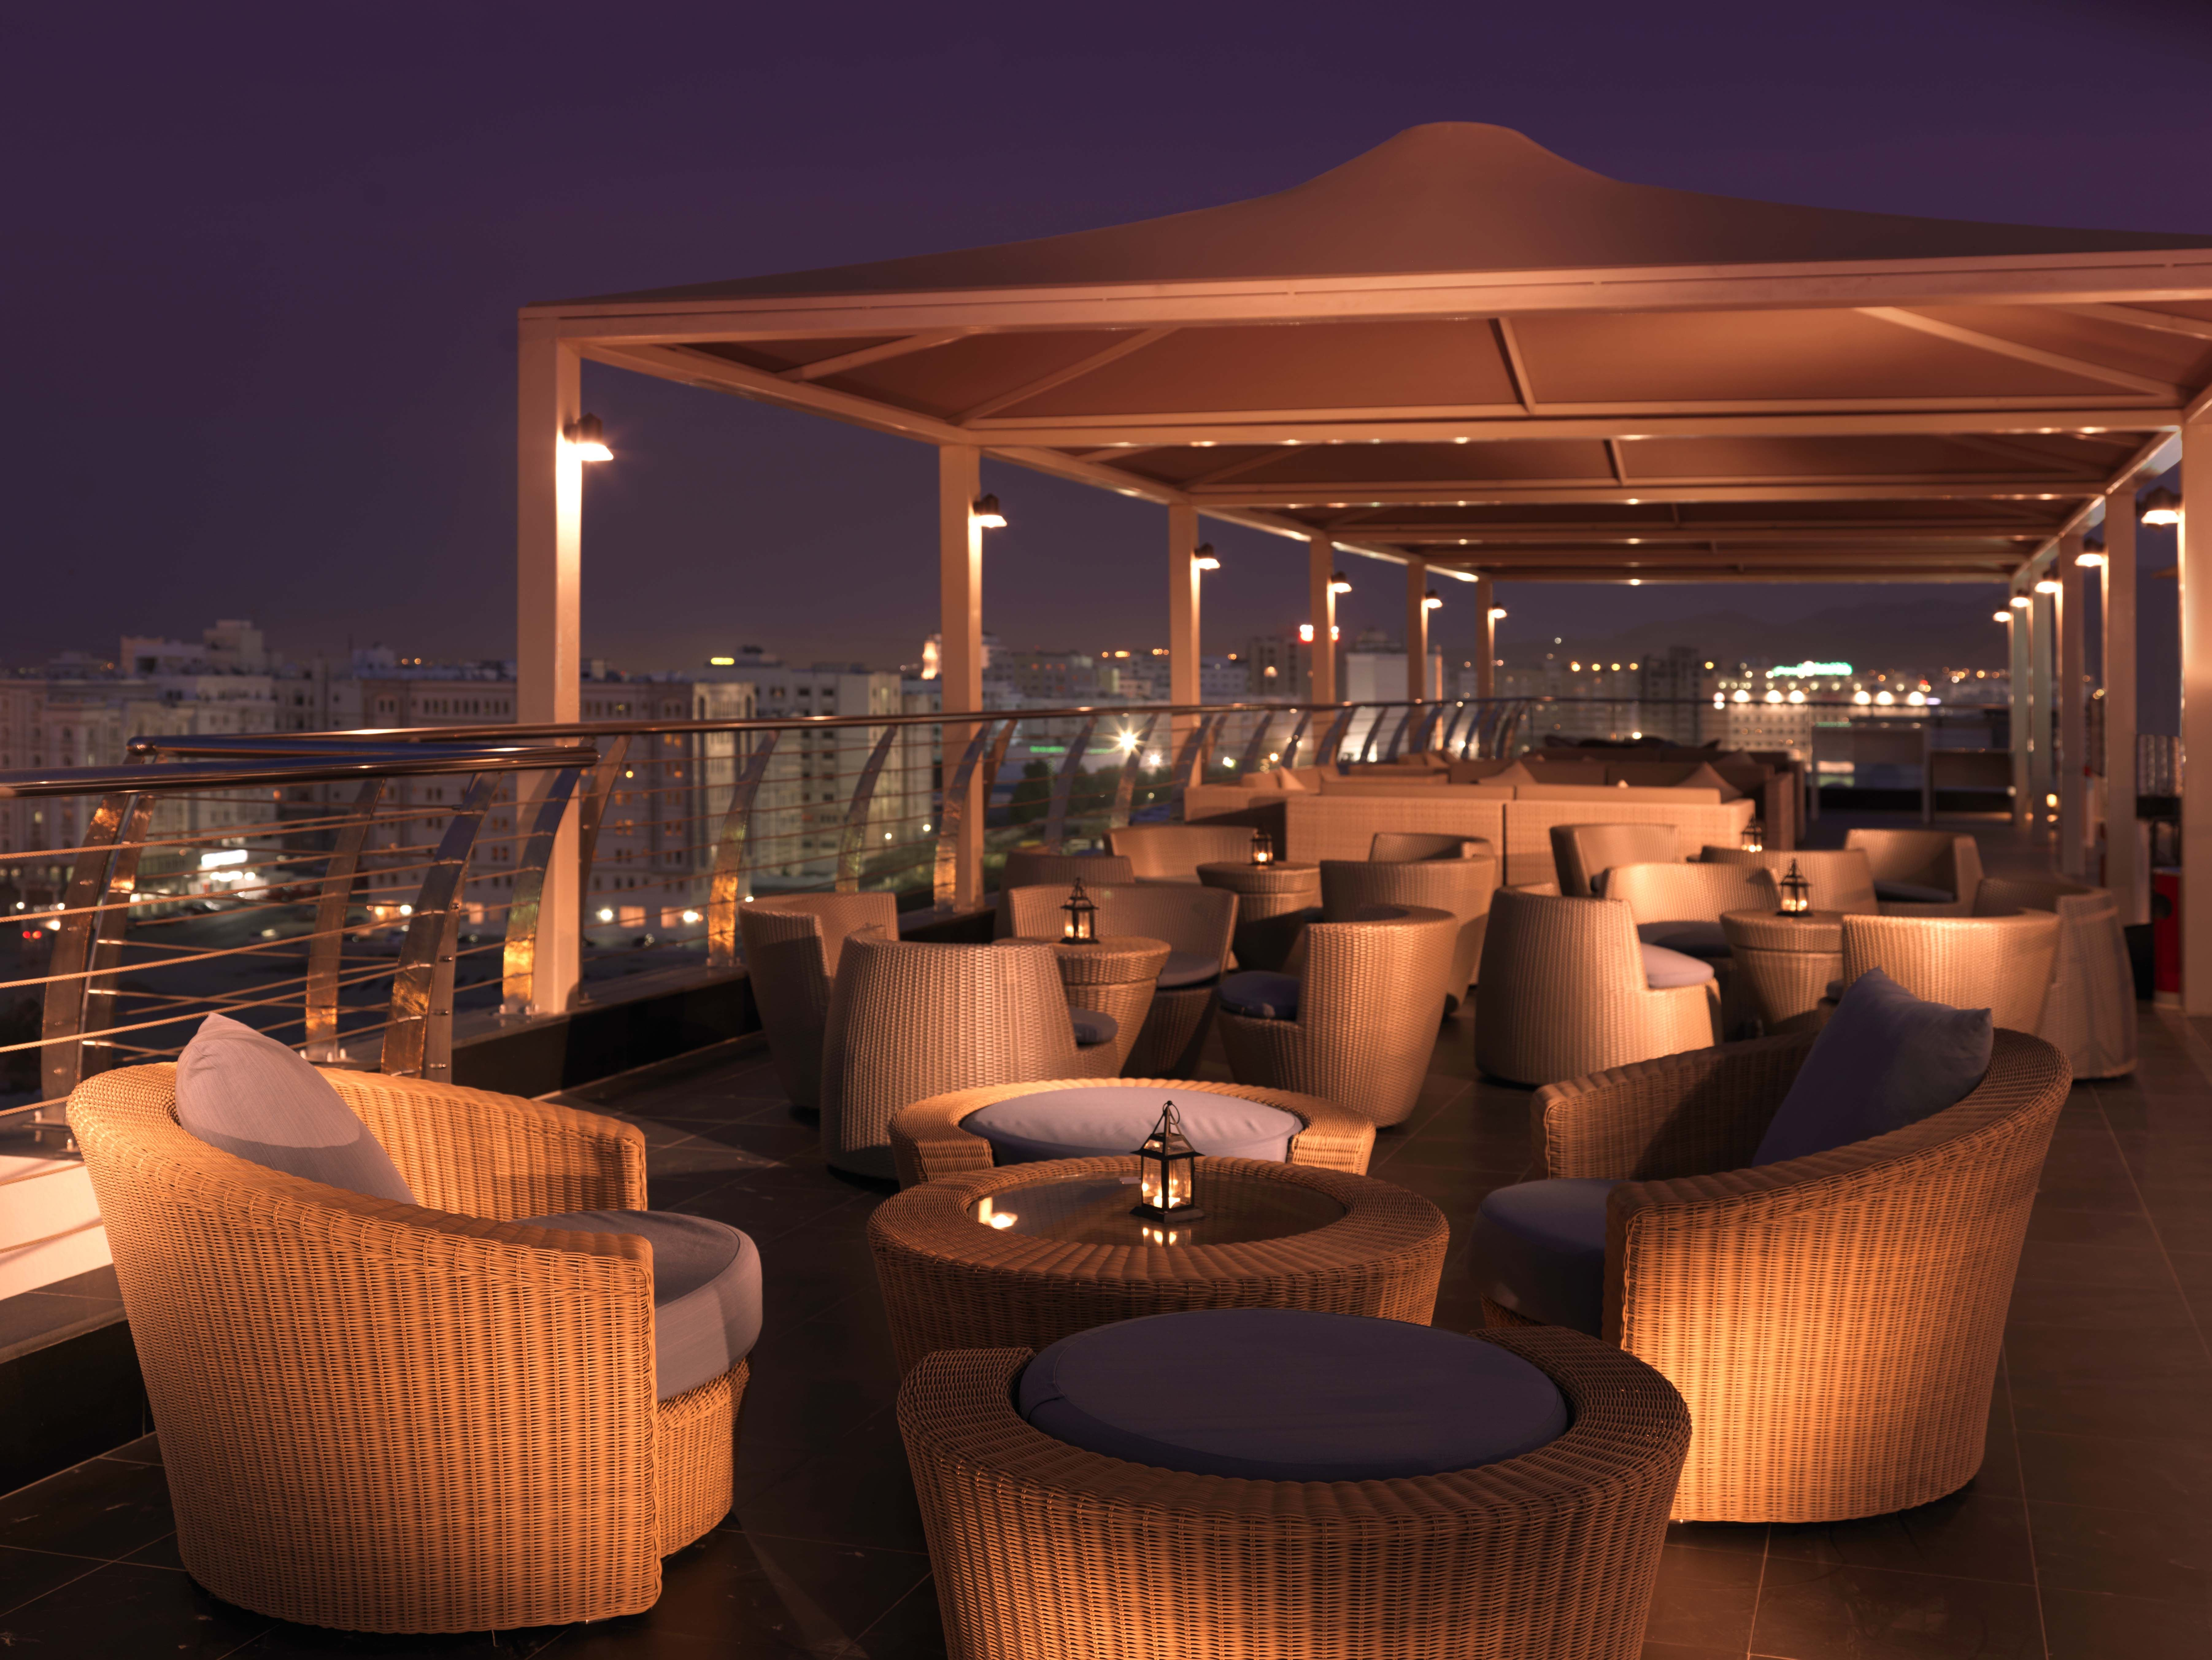 Sama Terrazza Rooftop Lounge At Park Inn Muscat Outdoor